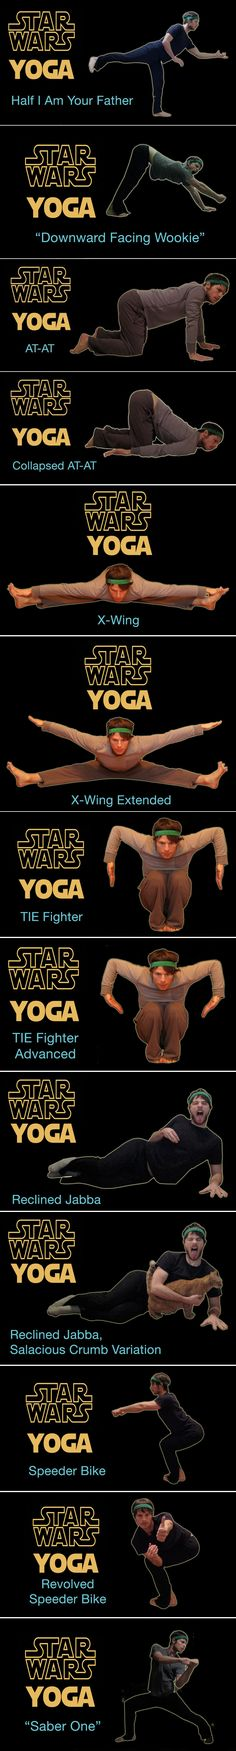 Relaxation warm-ups for drama class. Star Wars Yoga Poses! @Laura Dean